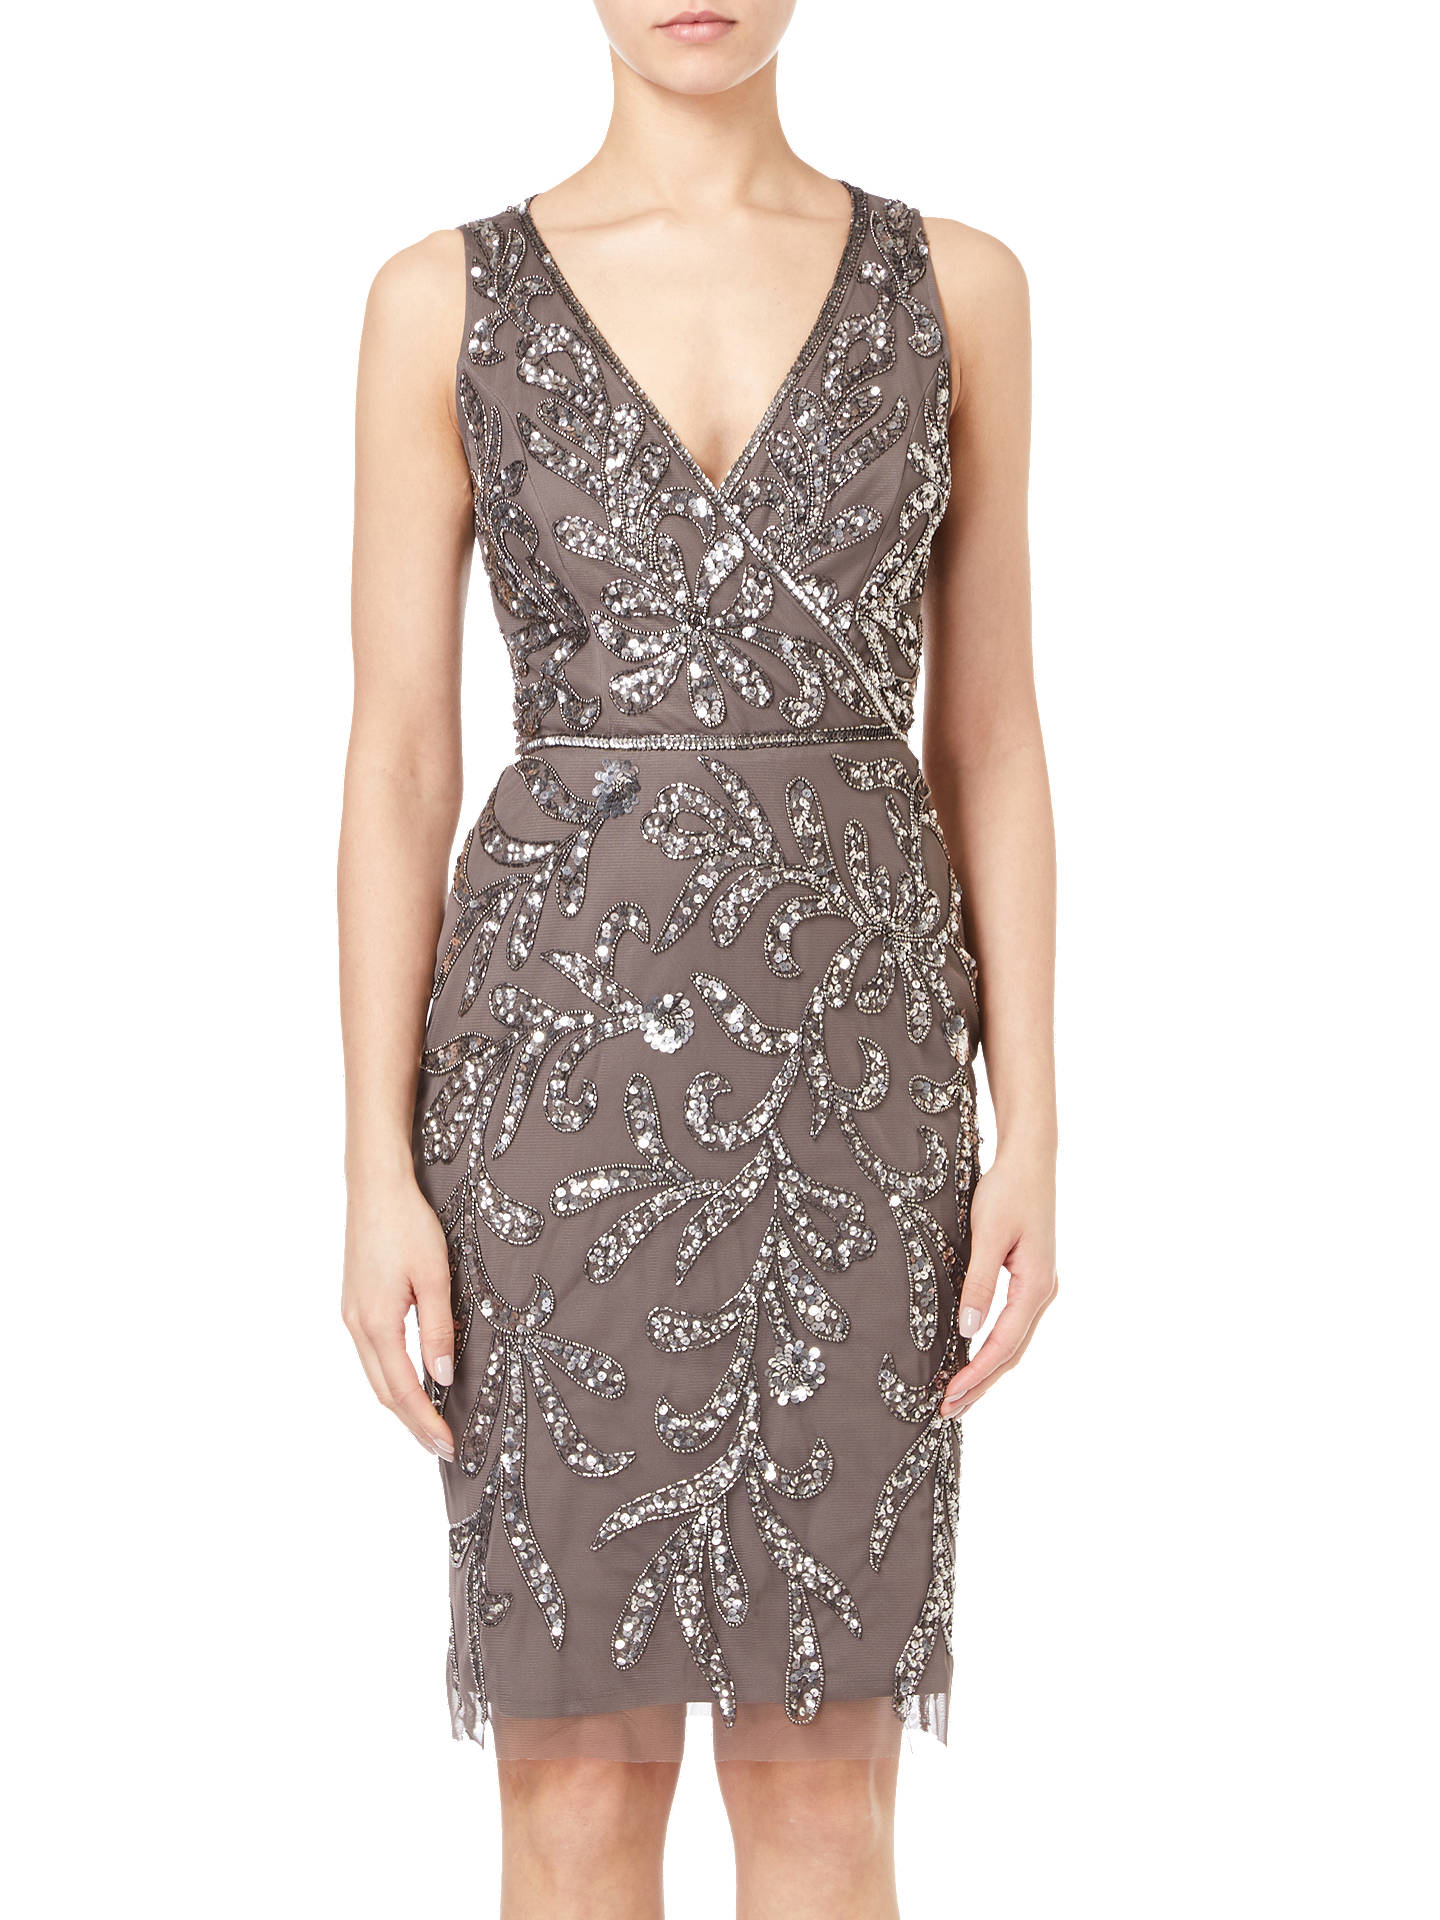 BuyAdrianna Papell Beaded Cocktail Dress, Lead Grey, 12 Online at johnlewis.com